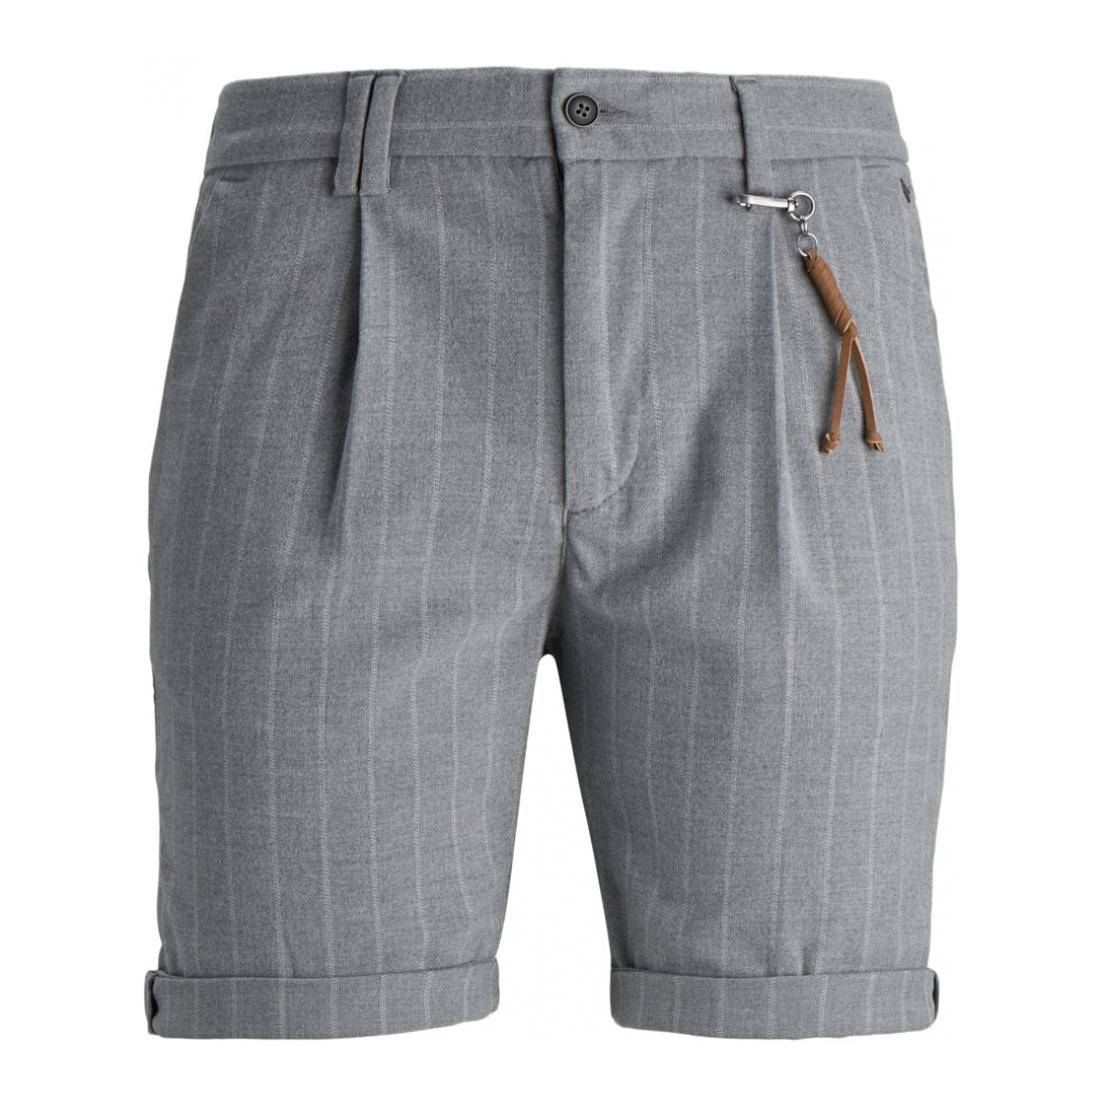 Jack & Jones  JJIMILTON JJCHINO SHORTS